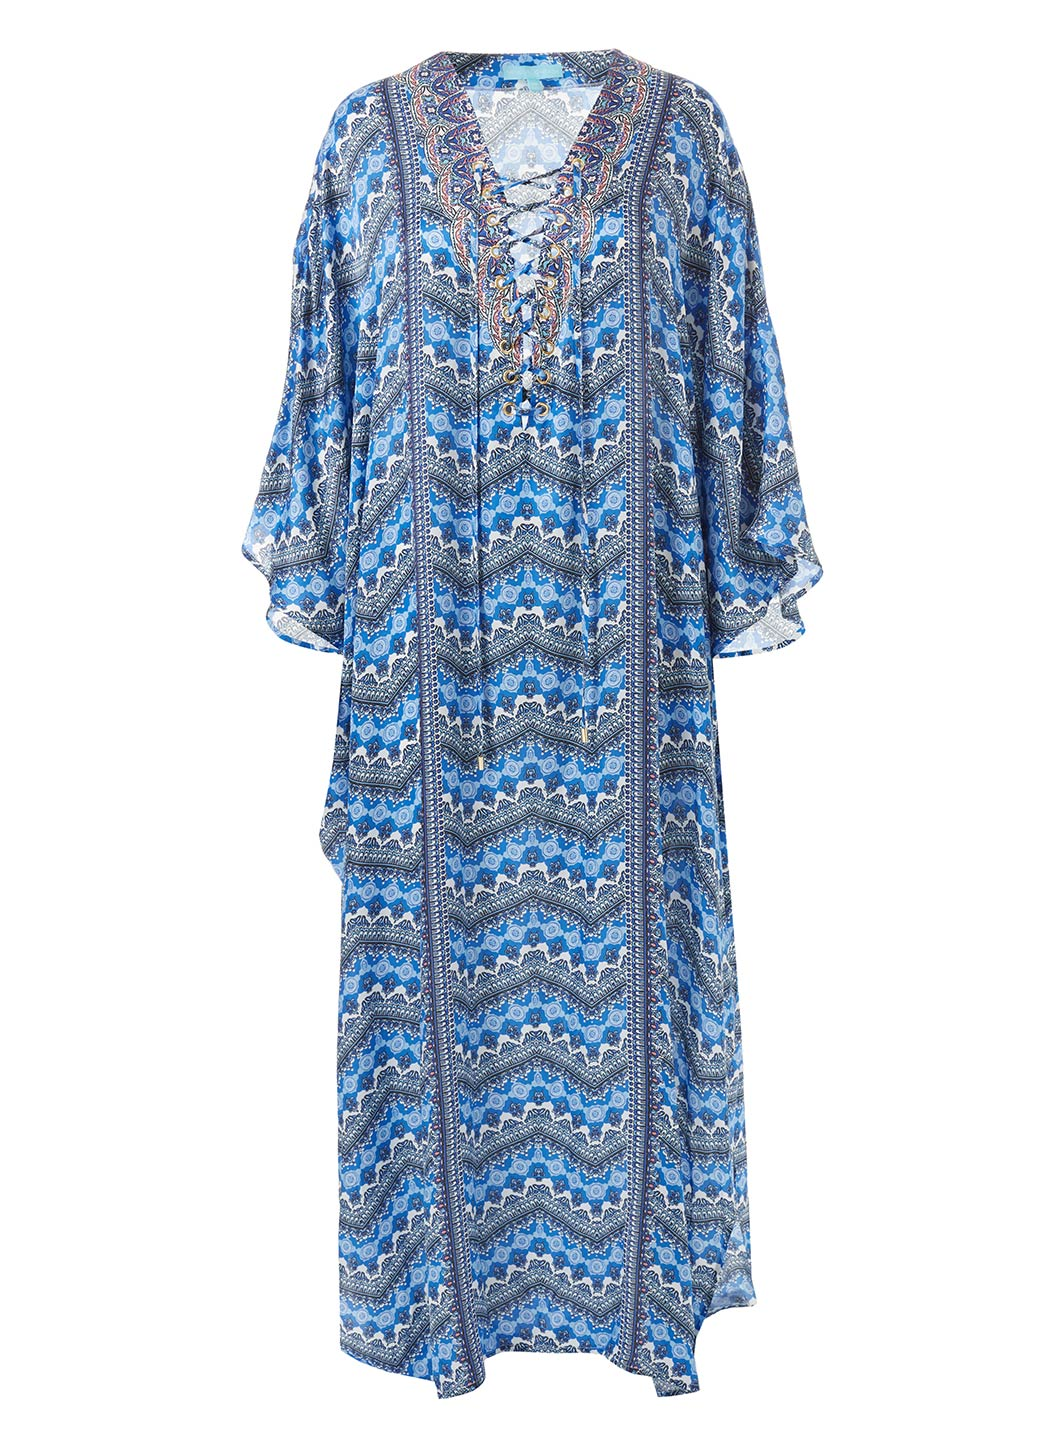 Lola Fresco Lace-Up Maxi Dres - Melissa Odabash Beachwear